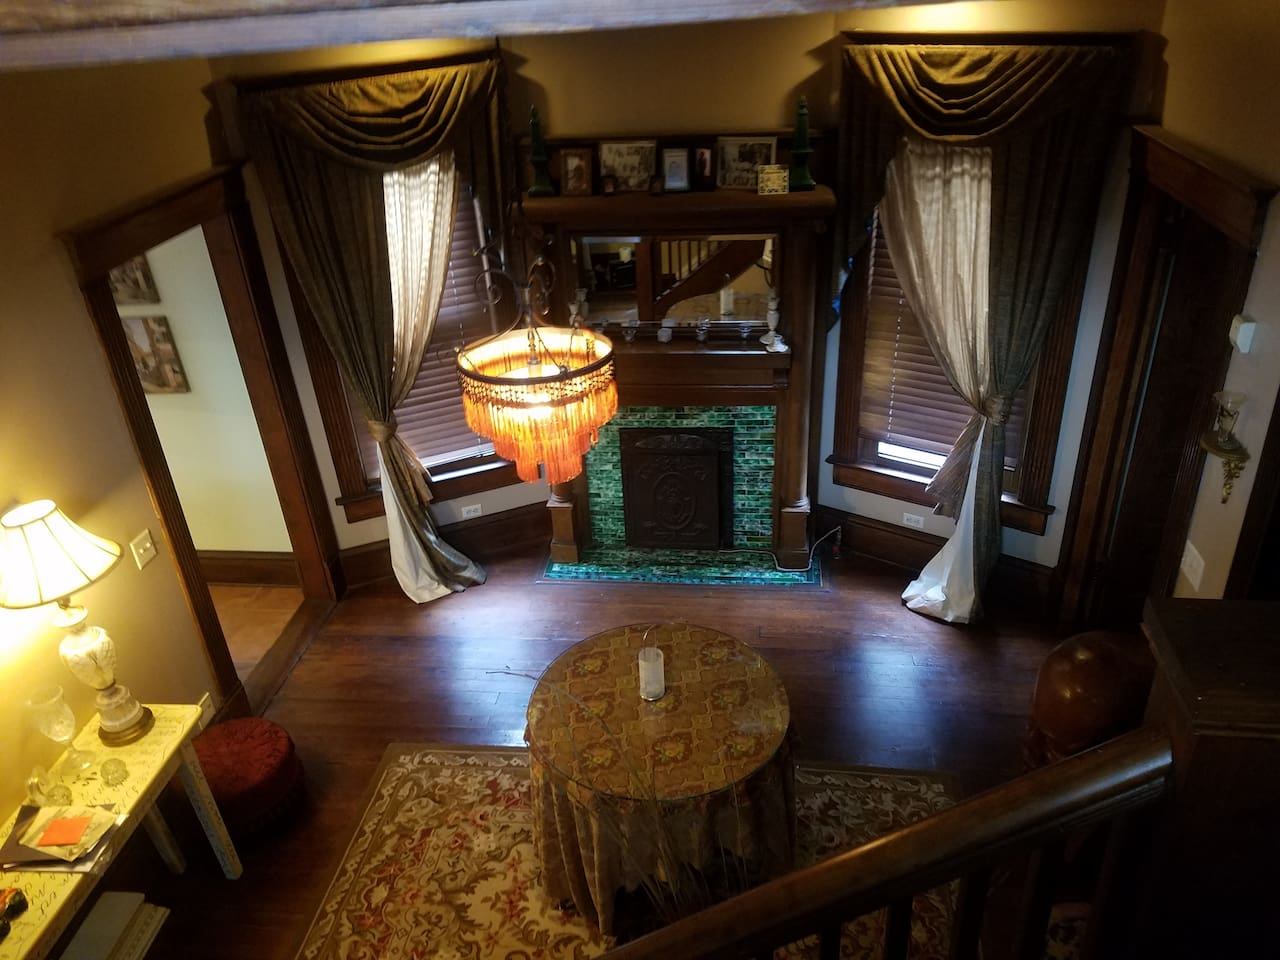 The view when you're heading upstairs.